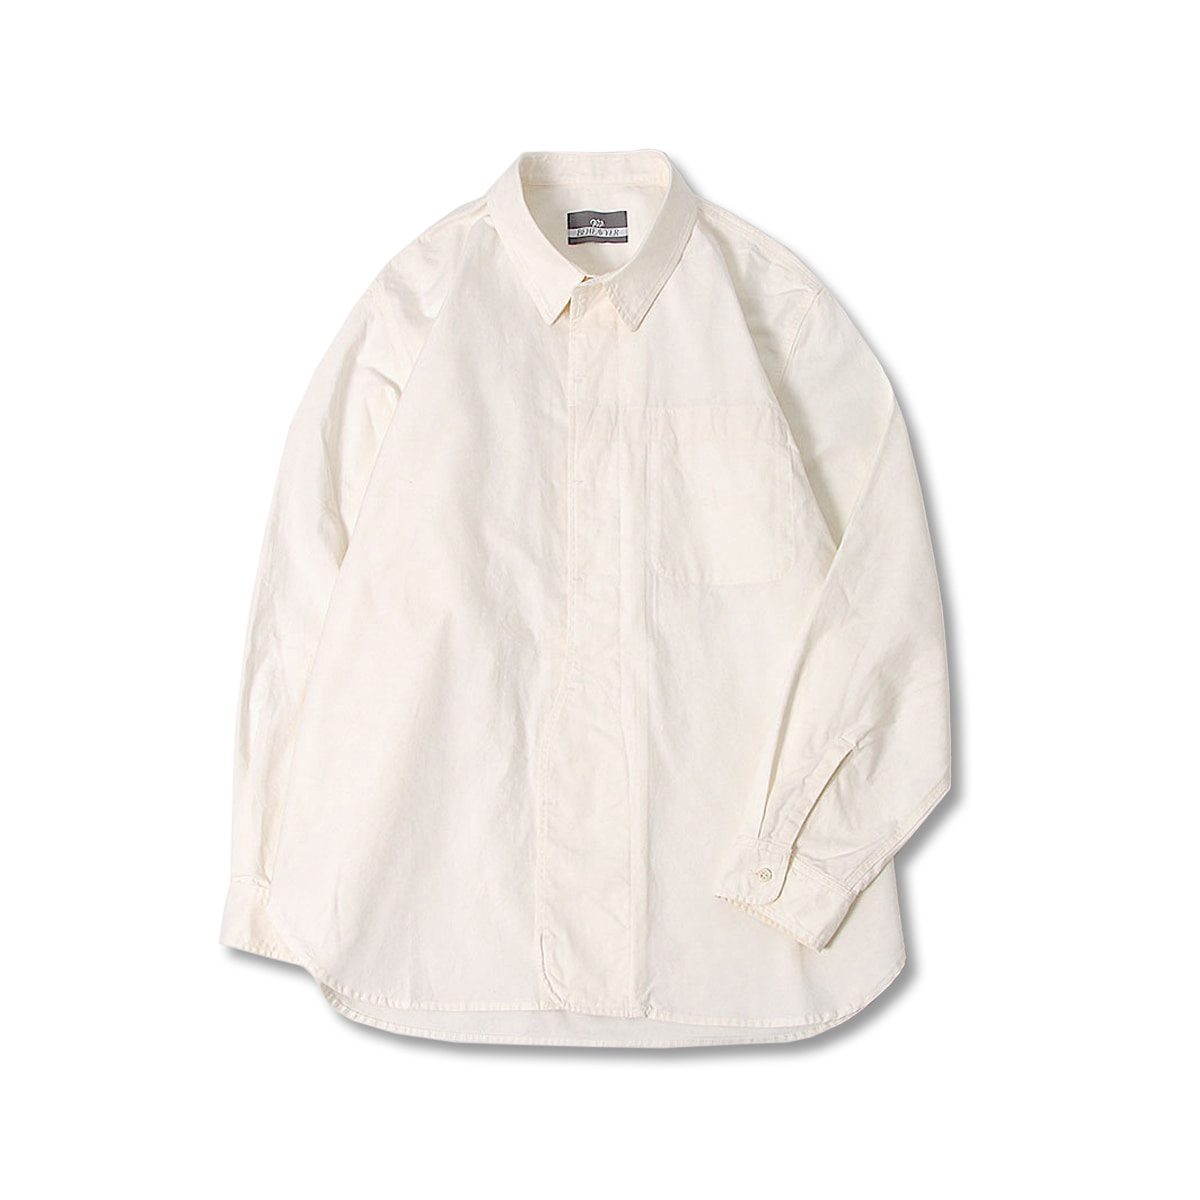 [BEHEAVYER] 1 1/2 SHIRT 'OFF WHITE'